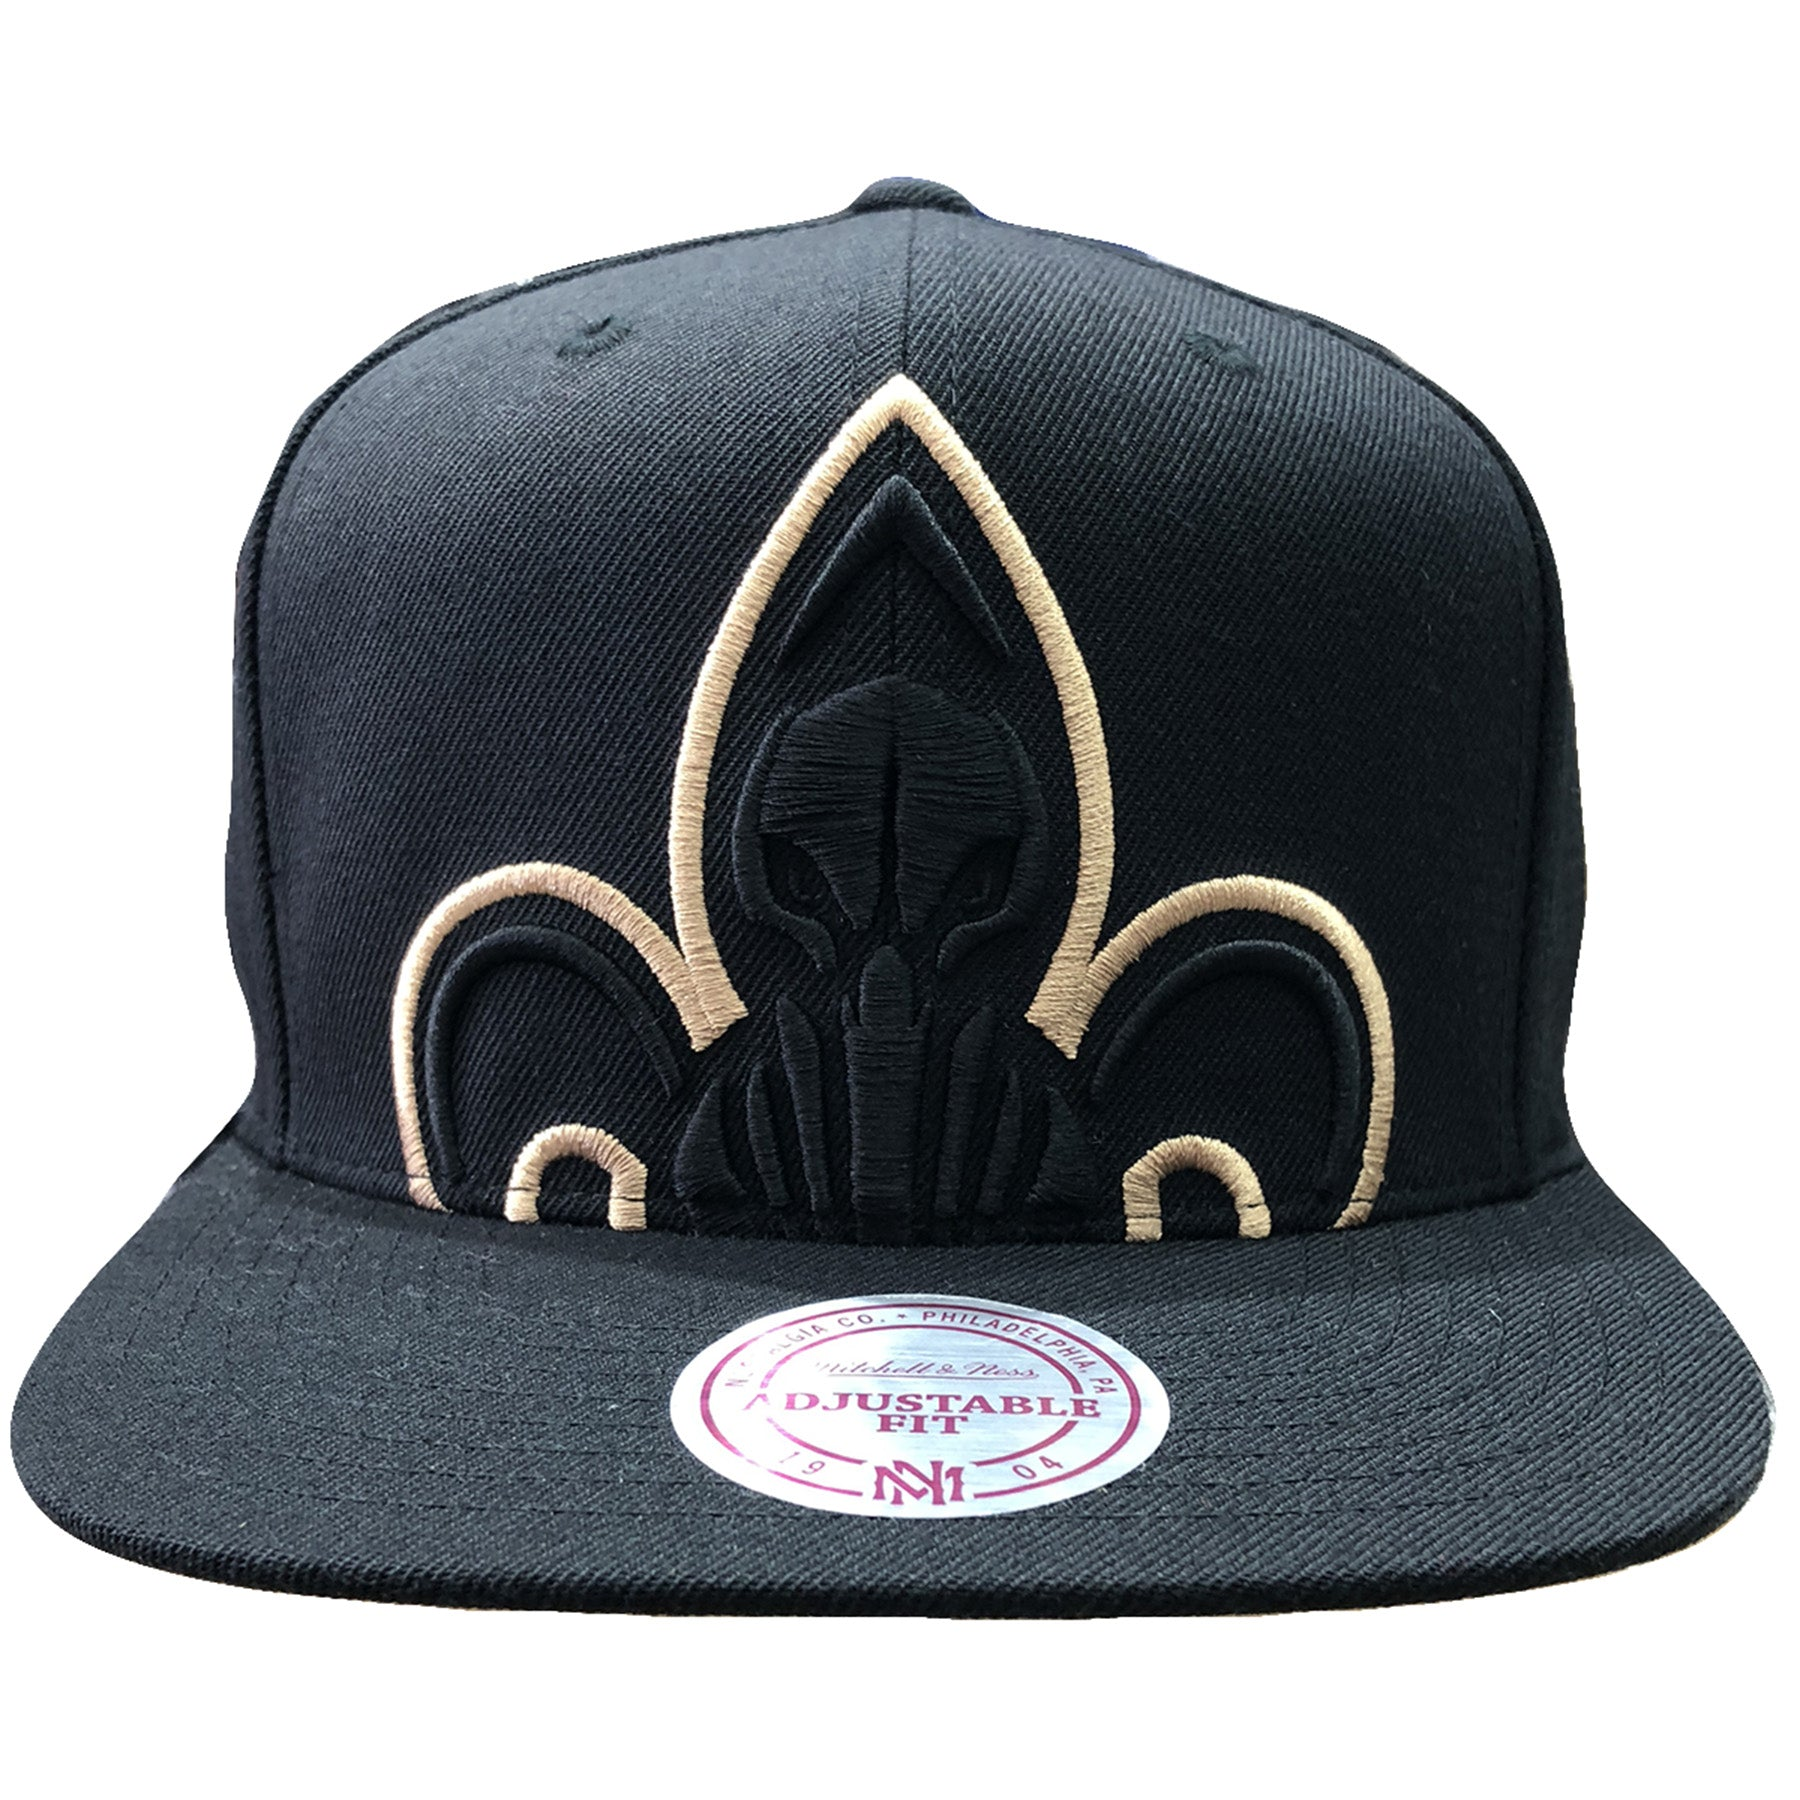 ae18dc430de ... coupon for embroidered on the front of the new orleans pelicans xl logo  snapback hat is